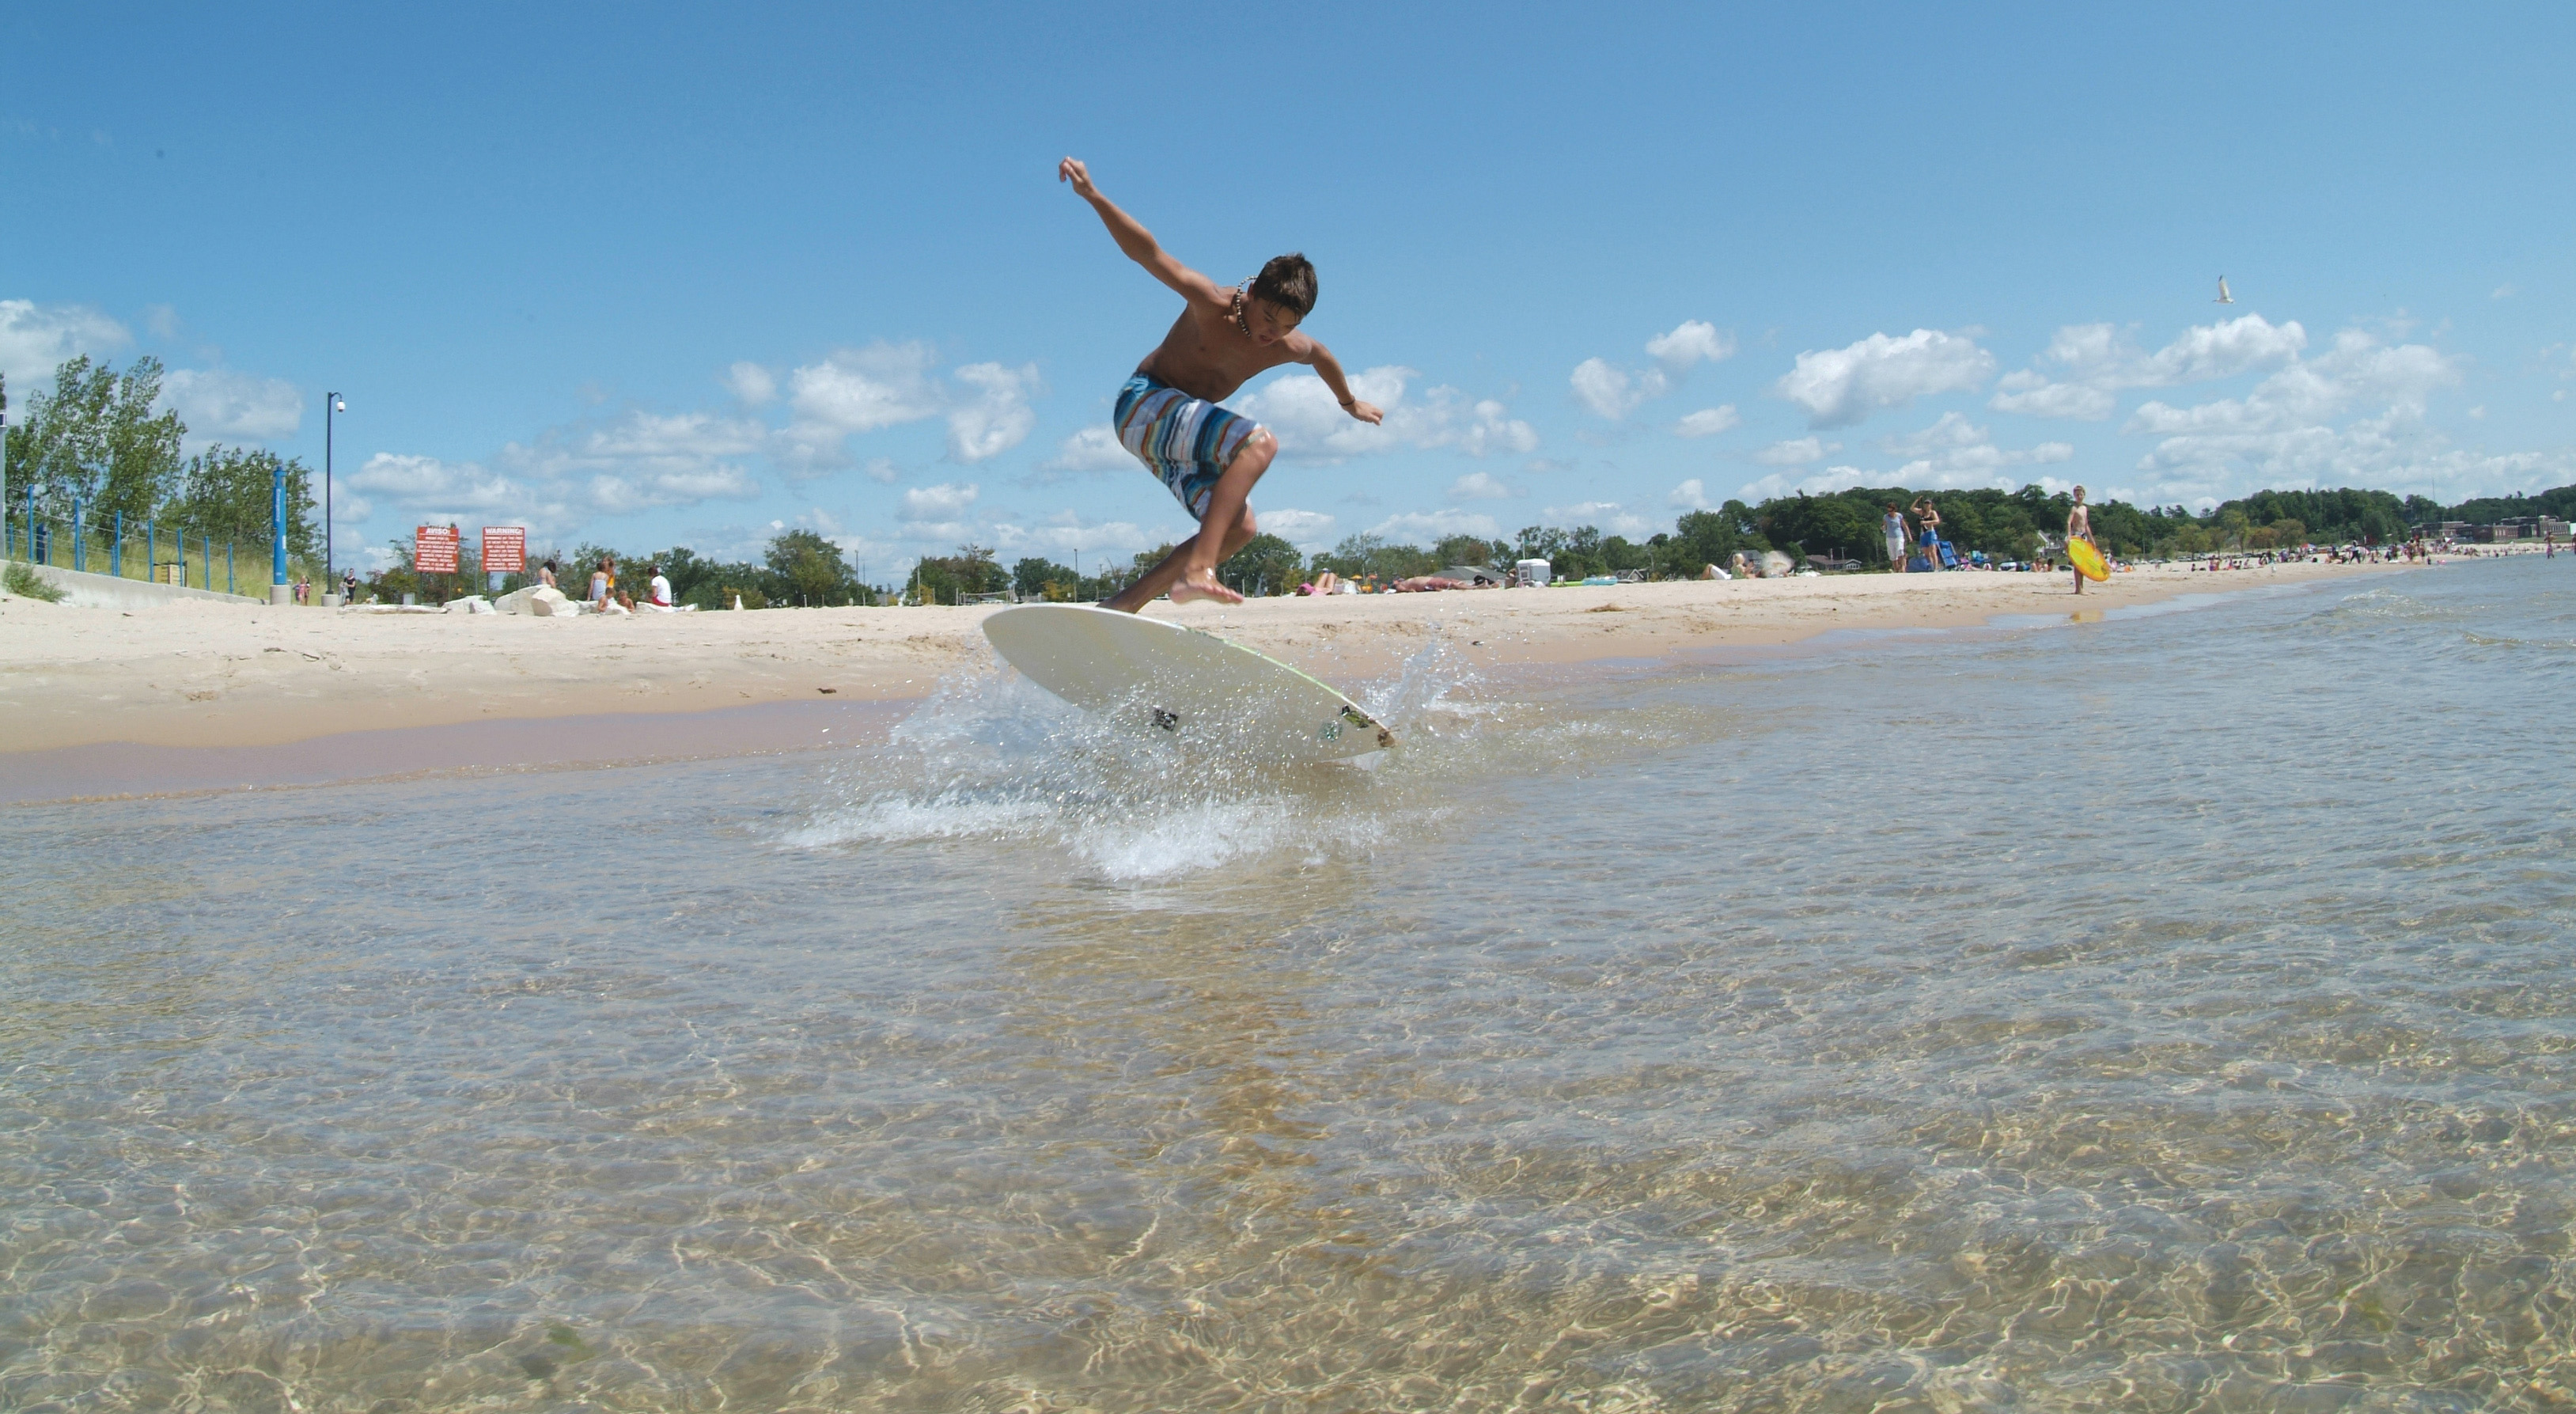 Kid surfing by Lake Michigan shore